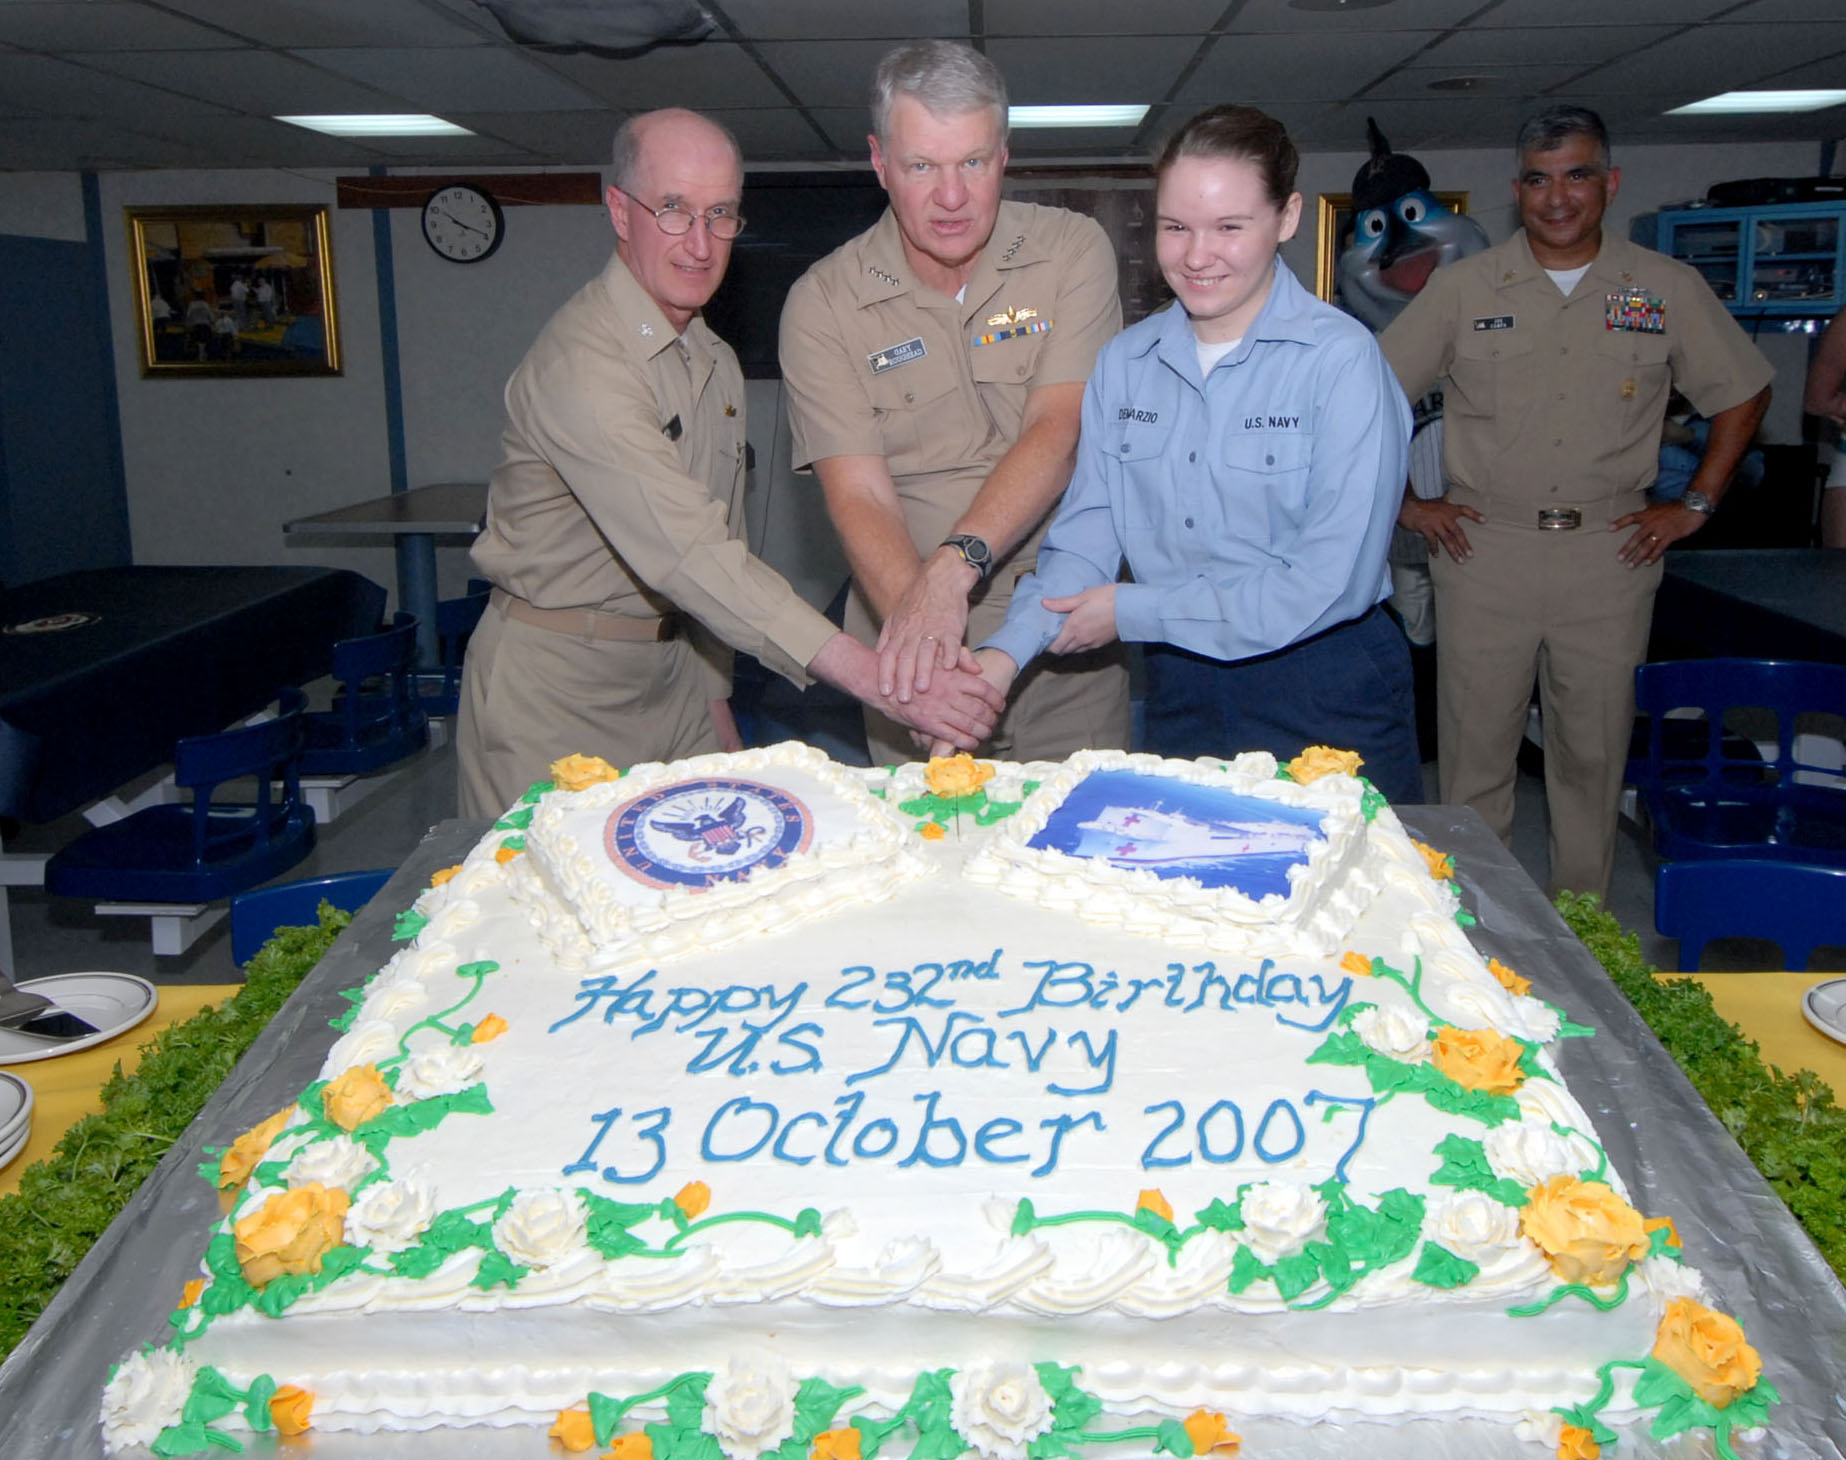 Navy Birthday Cake Fileus Navy 071012 N 8704k 134 Navy Birthday Celebration Aboard